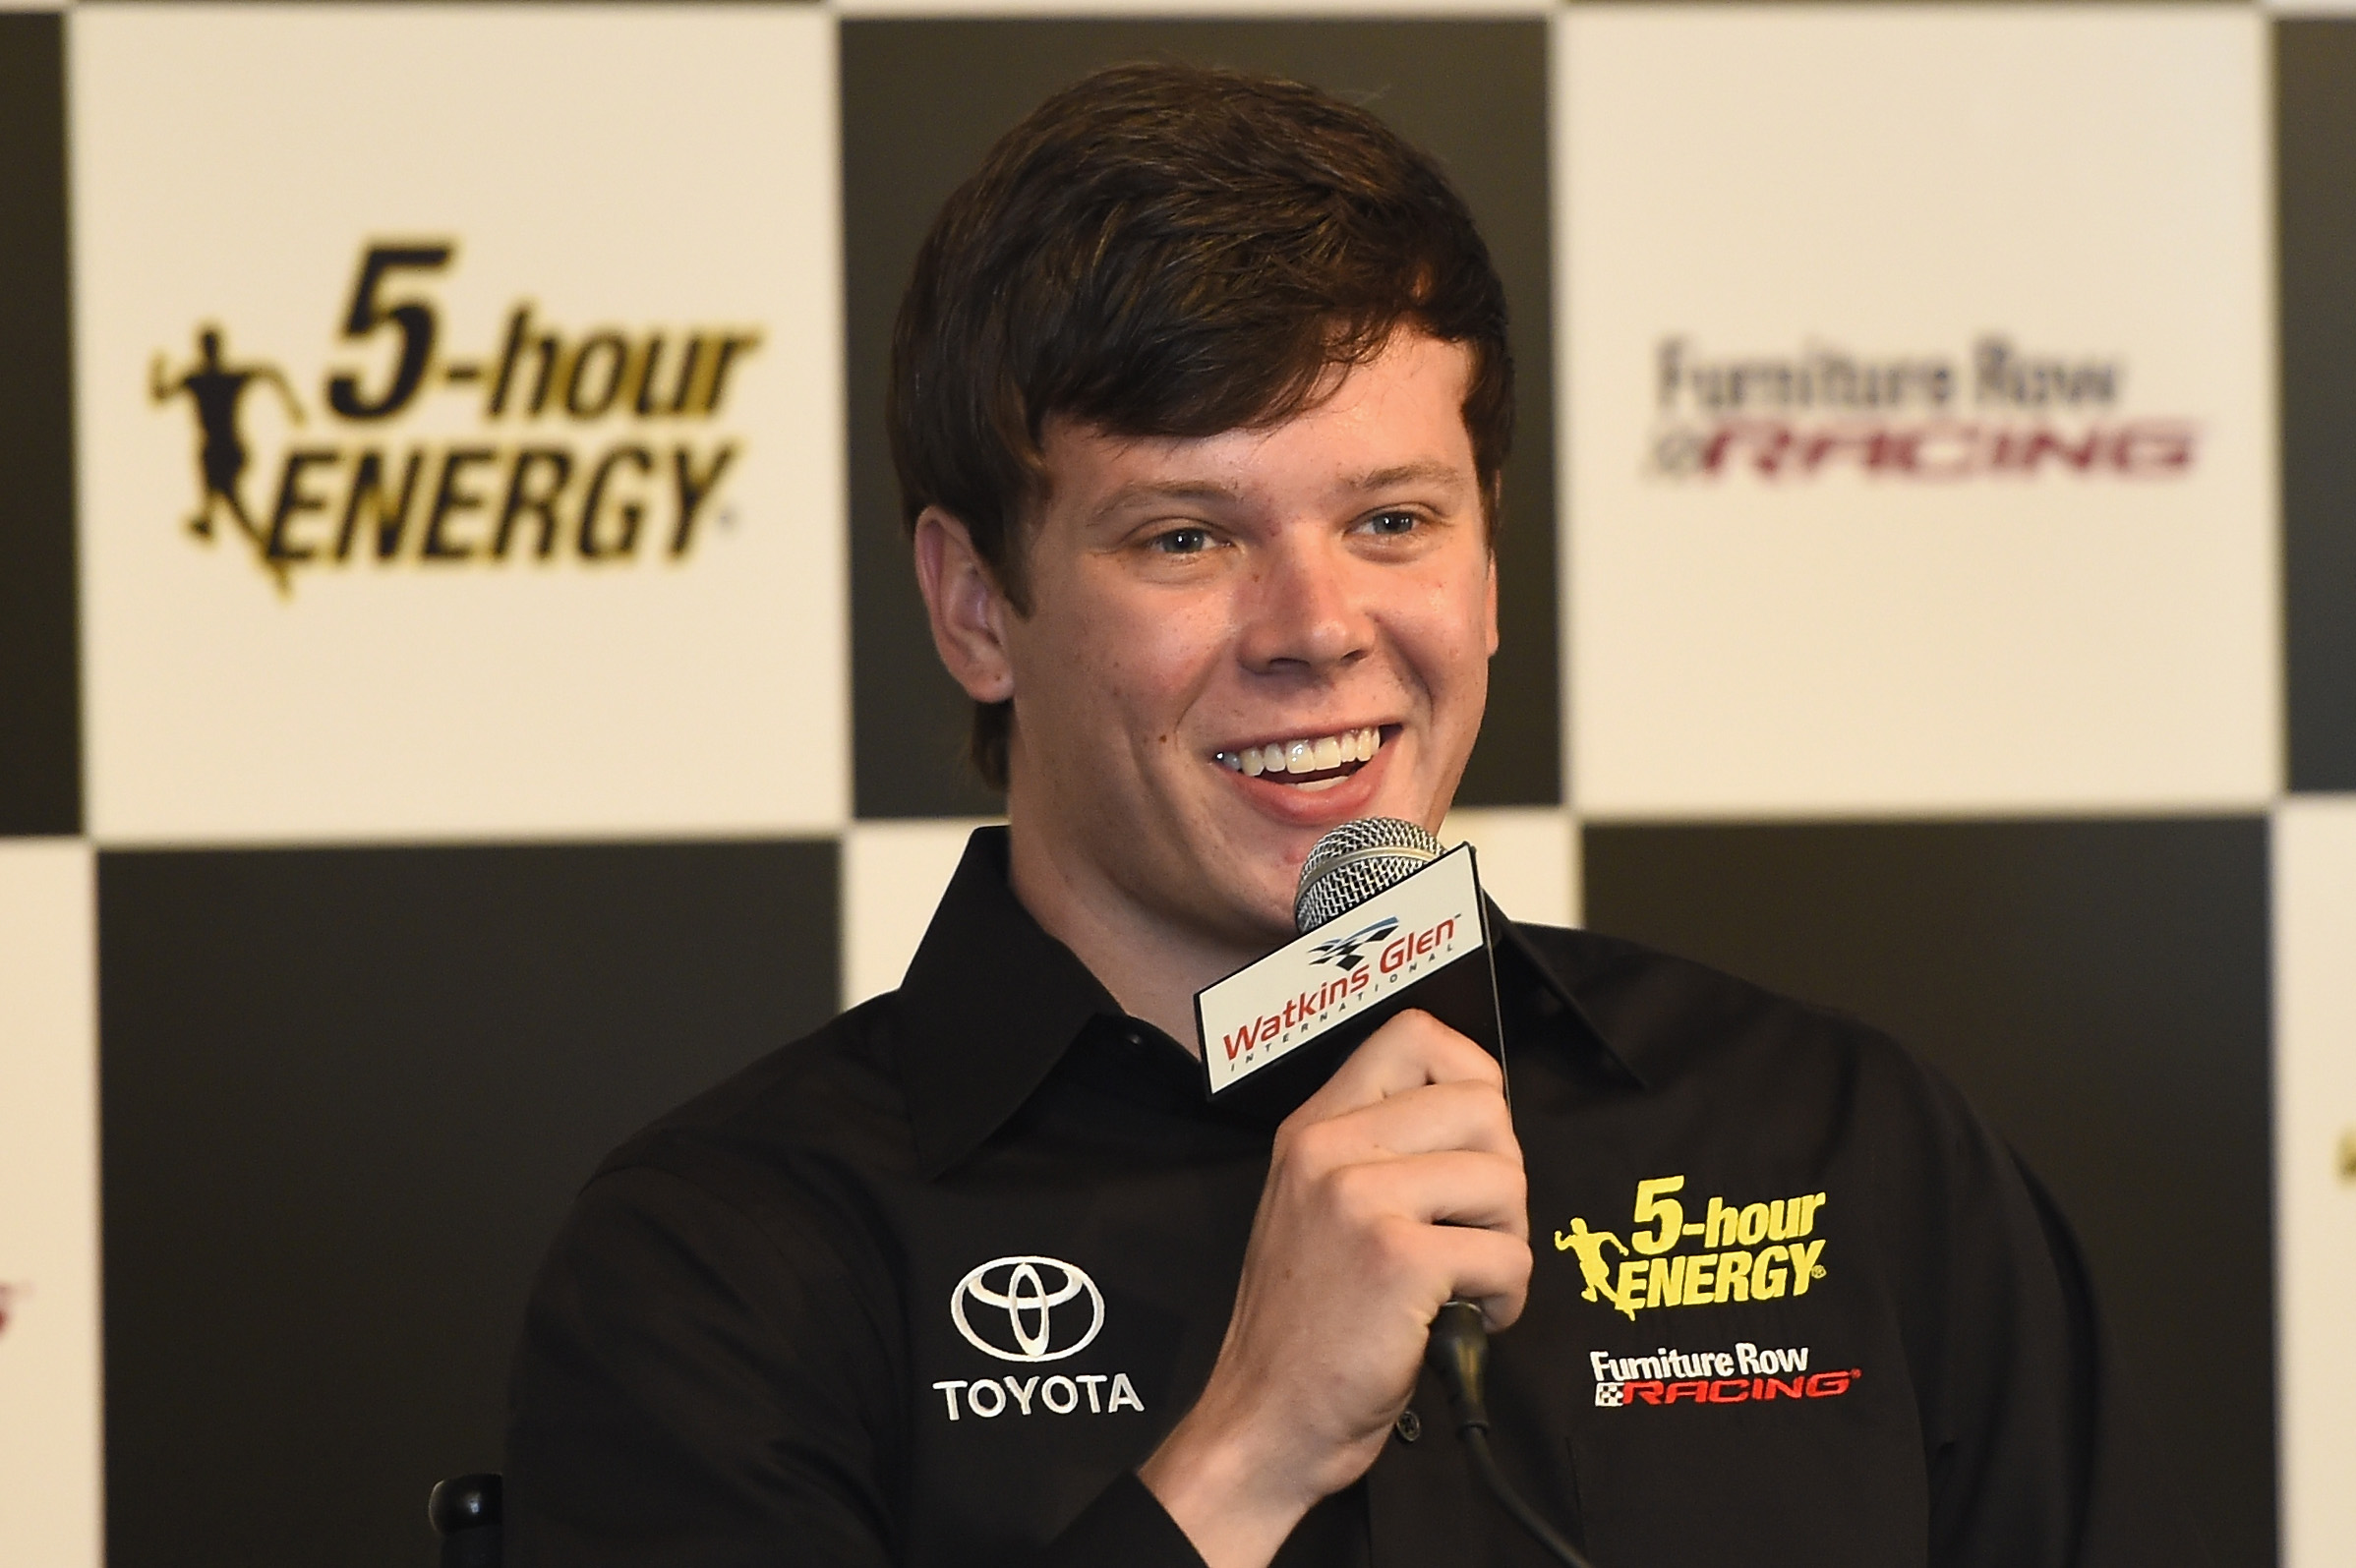 Erik Jones speaks to the media after announcing he will drive the #77 5 -hour Energy Toyota for Furniture Row Racing in 2017 prior to the NASCAR Sprint Cup Series Cheez-It 355 at Watkins Glen International on August 7, 2016 in Watkins Glen, New York. (credit: Josh Hedges/Getty Images)